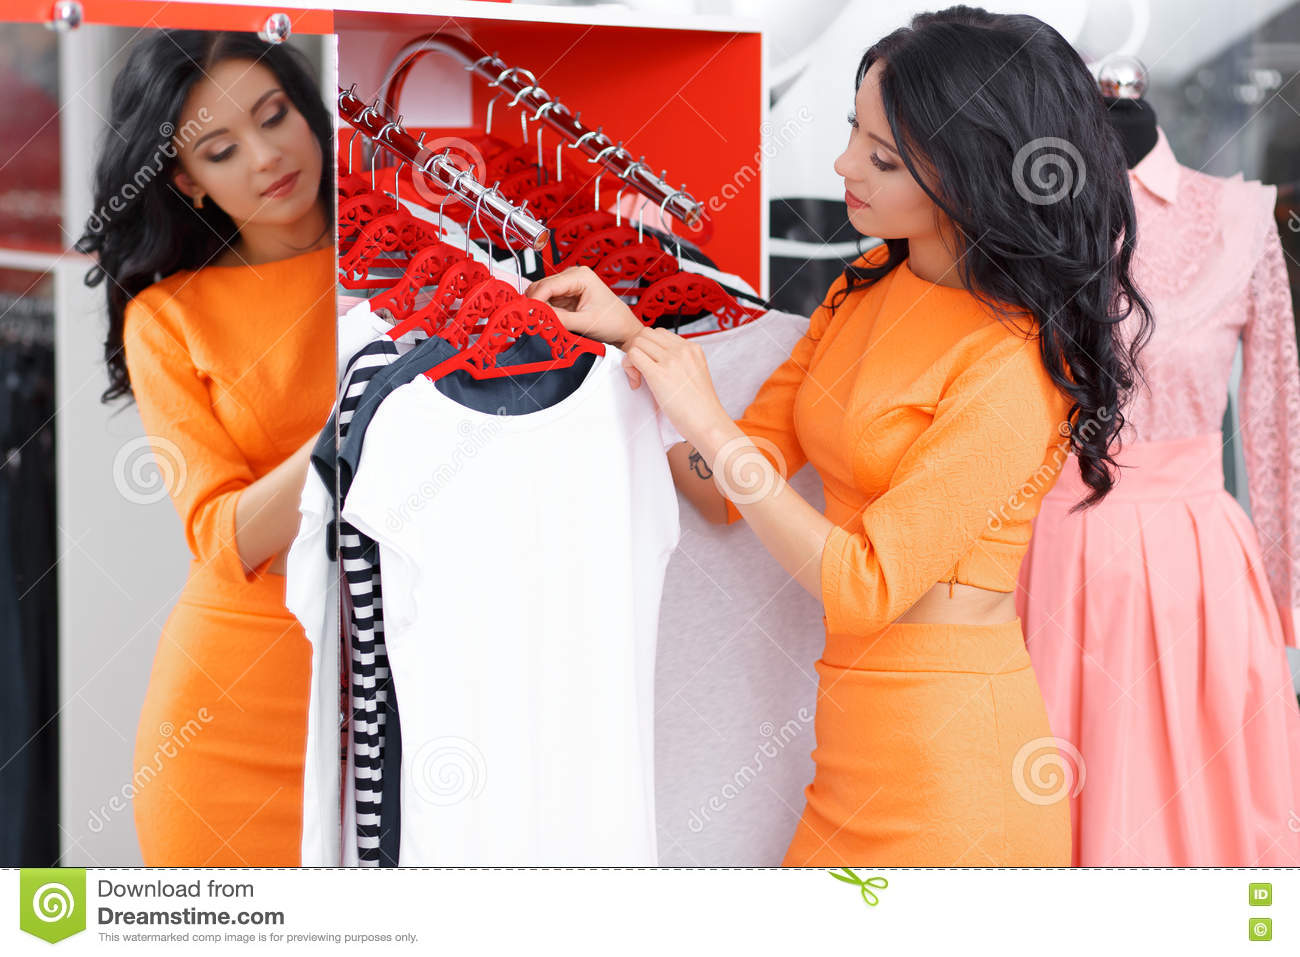 ed7c10c520fa1 Beautiful Young Woman Shopping In A Clothing Store Stock Image ...